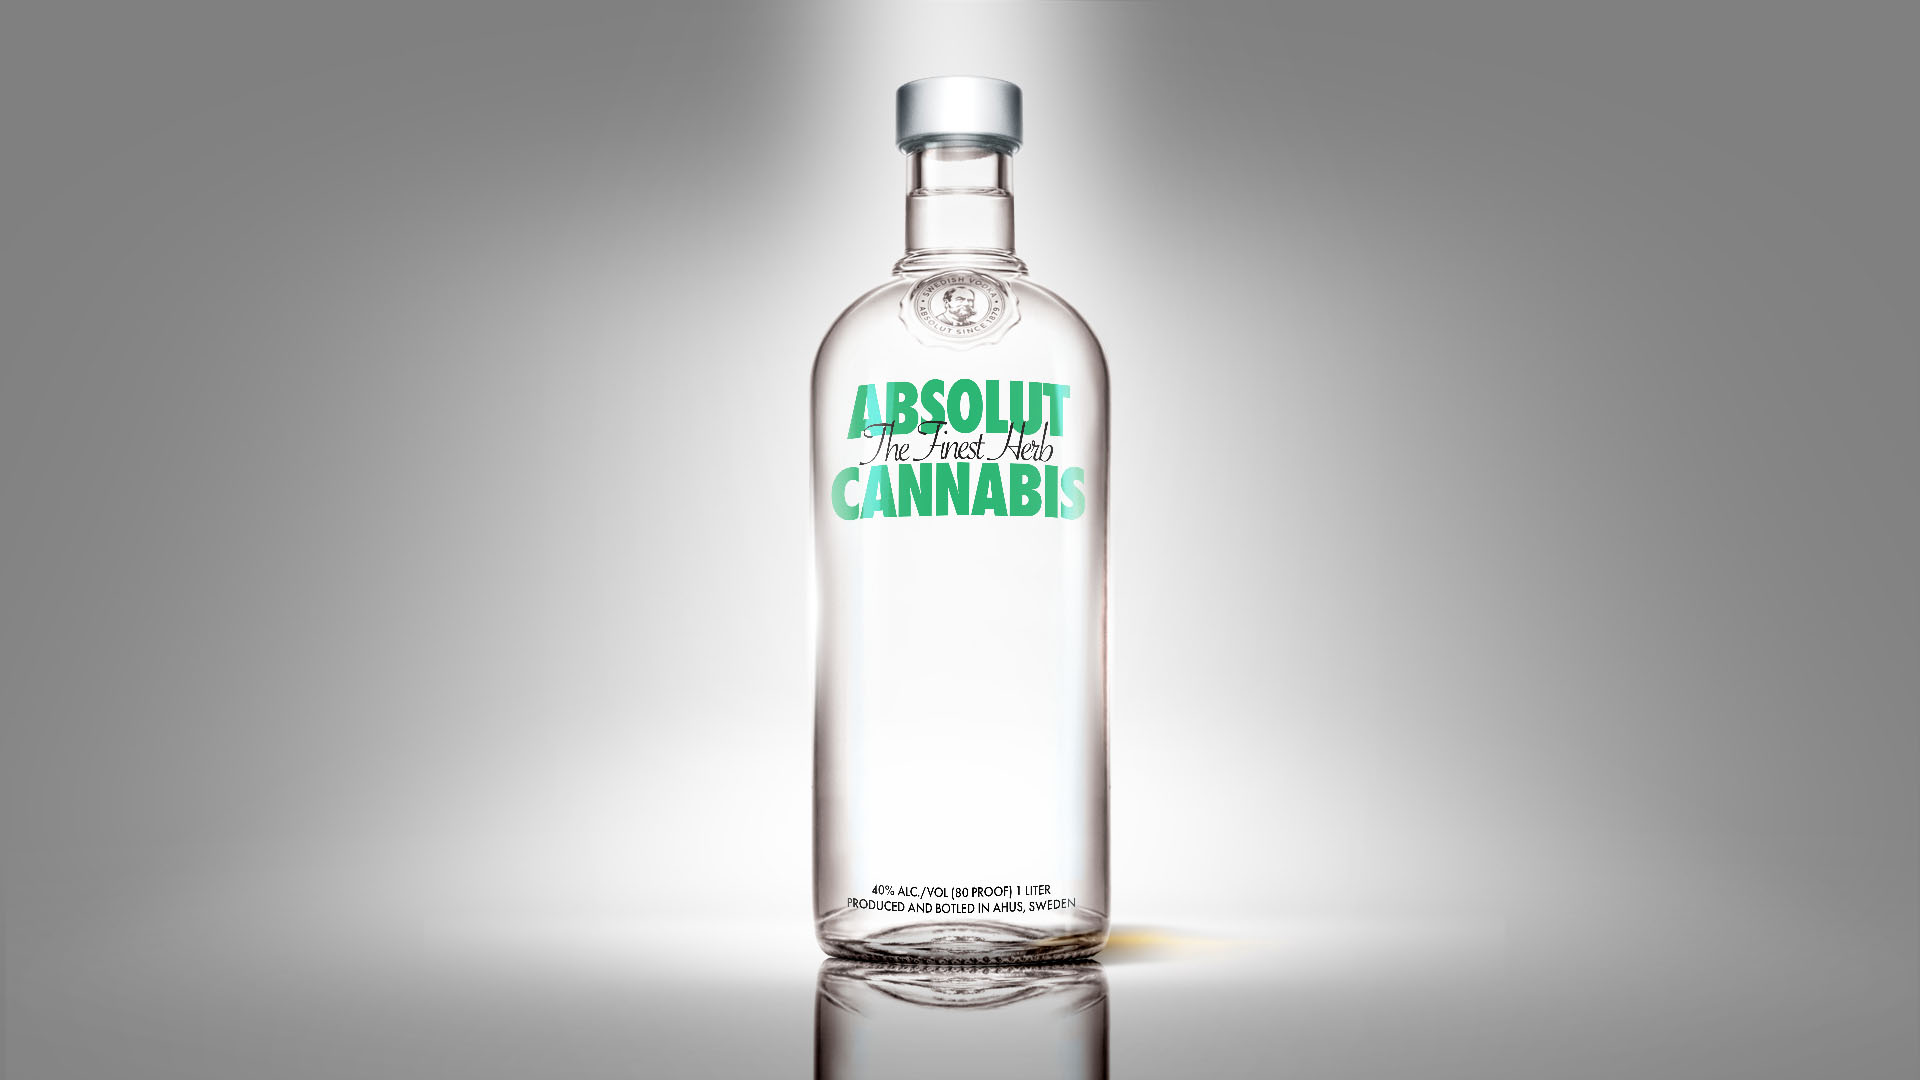 Alcohol and cannabis